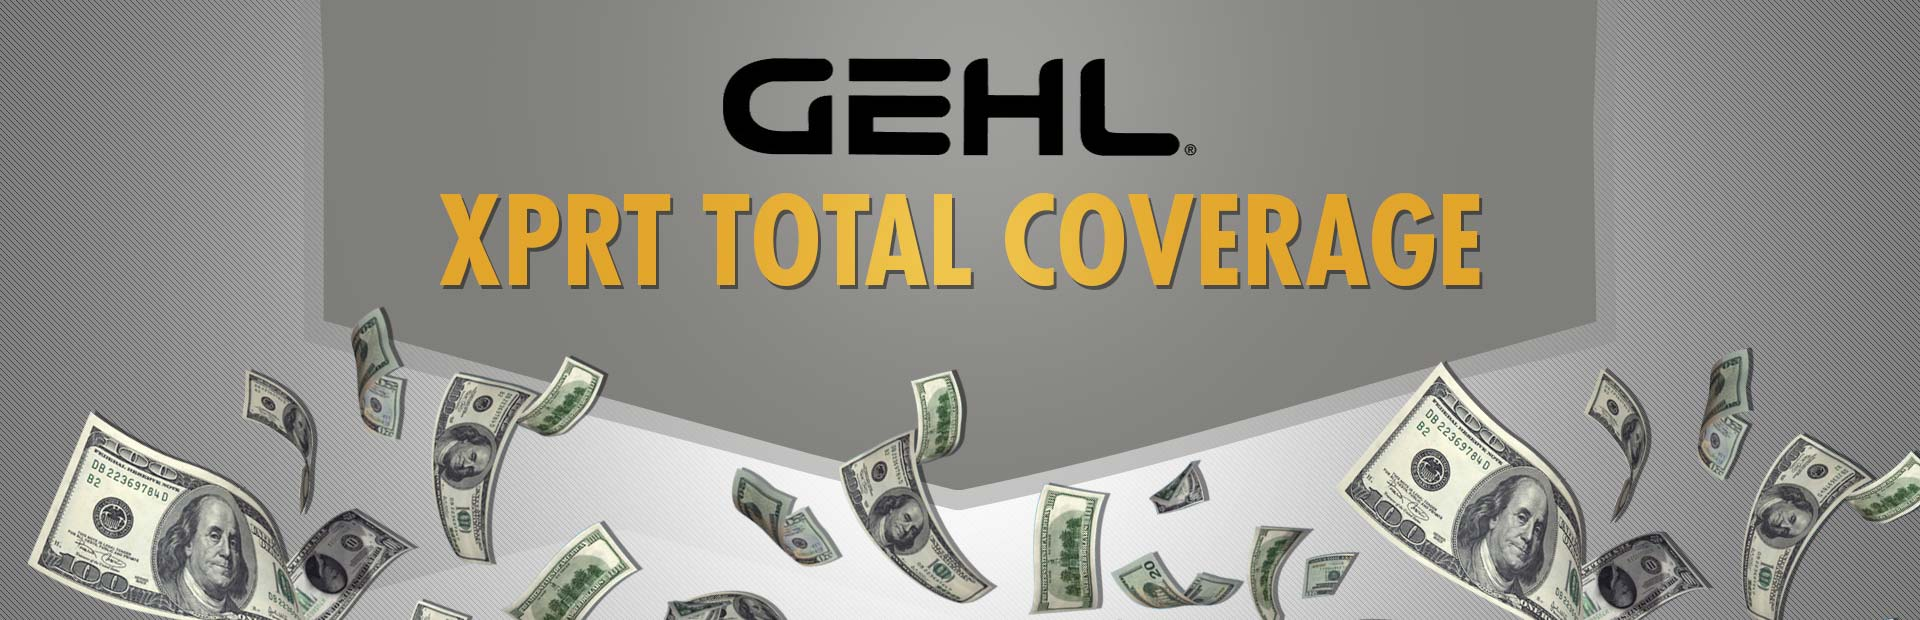 Gehl: XPRT Total Coverage